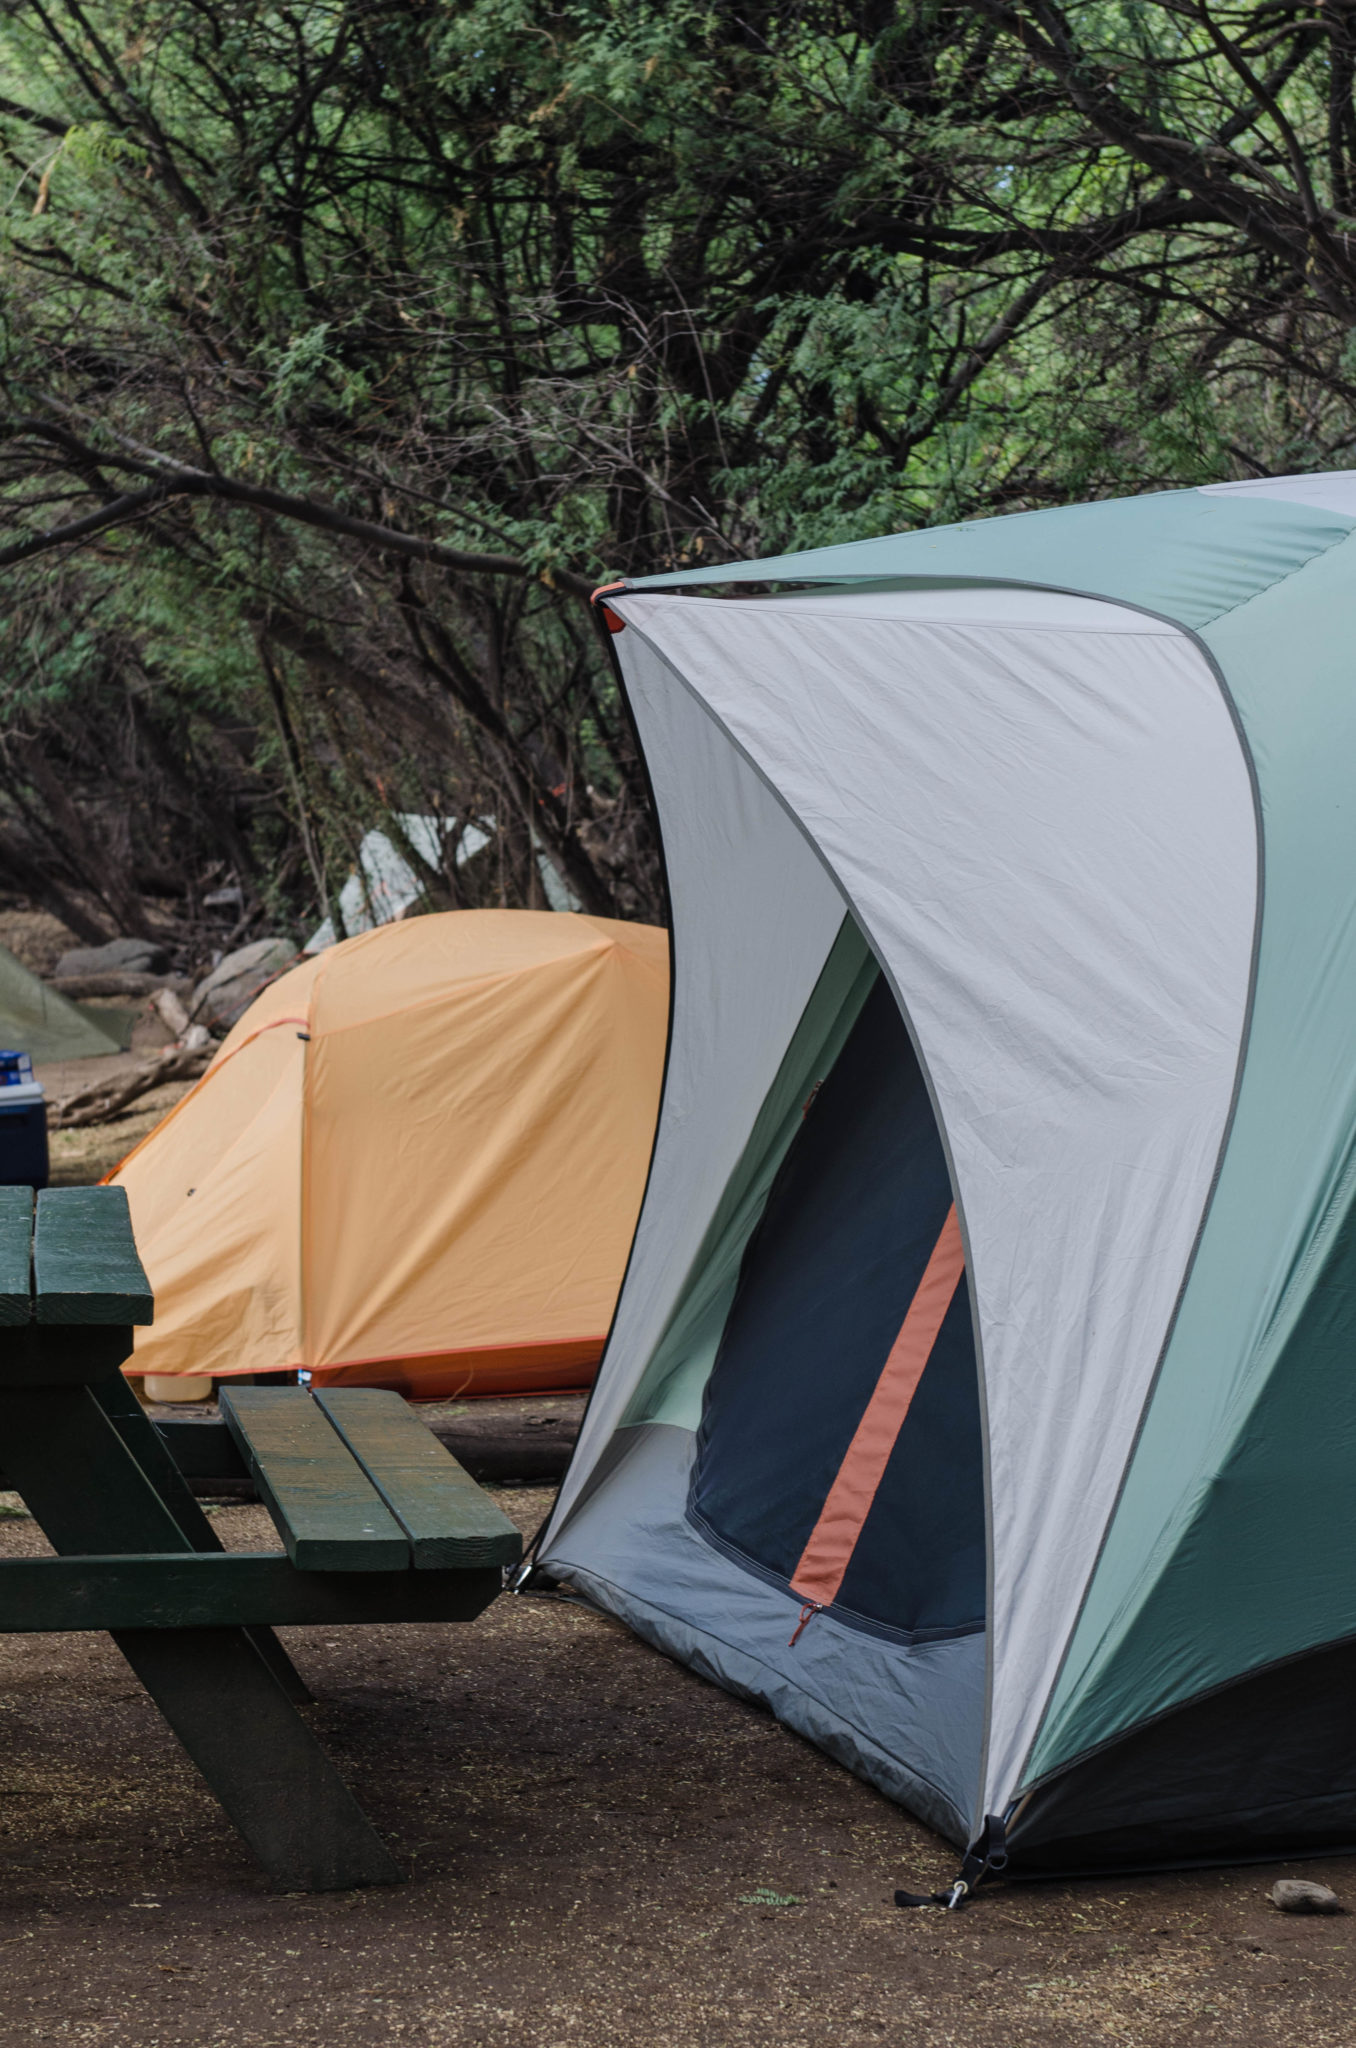 Hawaii Guide: Ever thought of camping in Hawaii? We did it, and loved it!